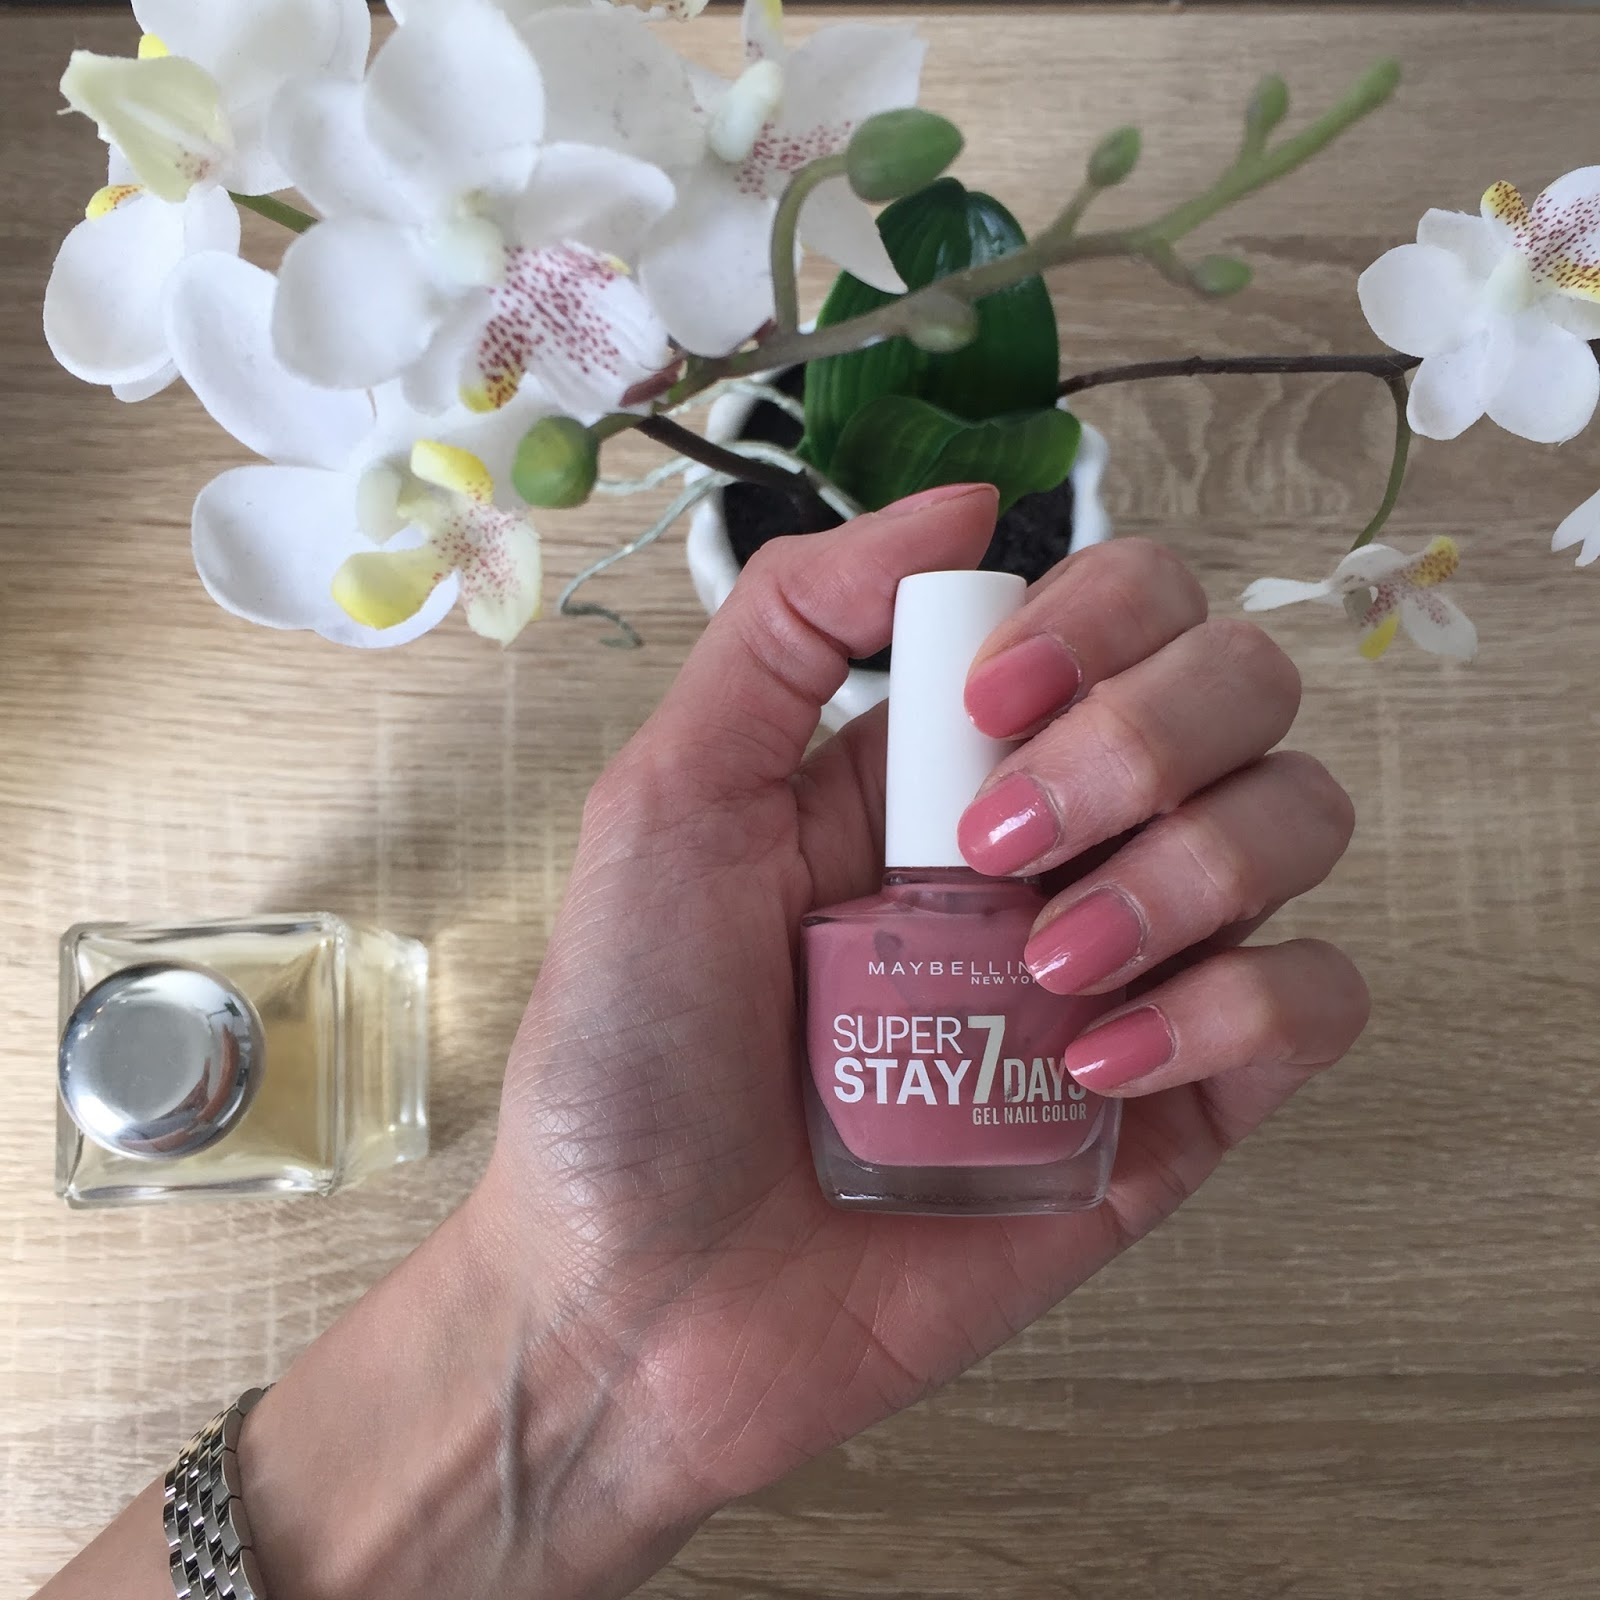 August Favourites 9 - Maybelline Super Stay 7 Days Gel Nail Color in Nude Rose